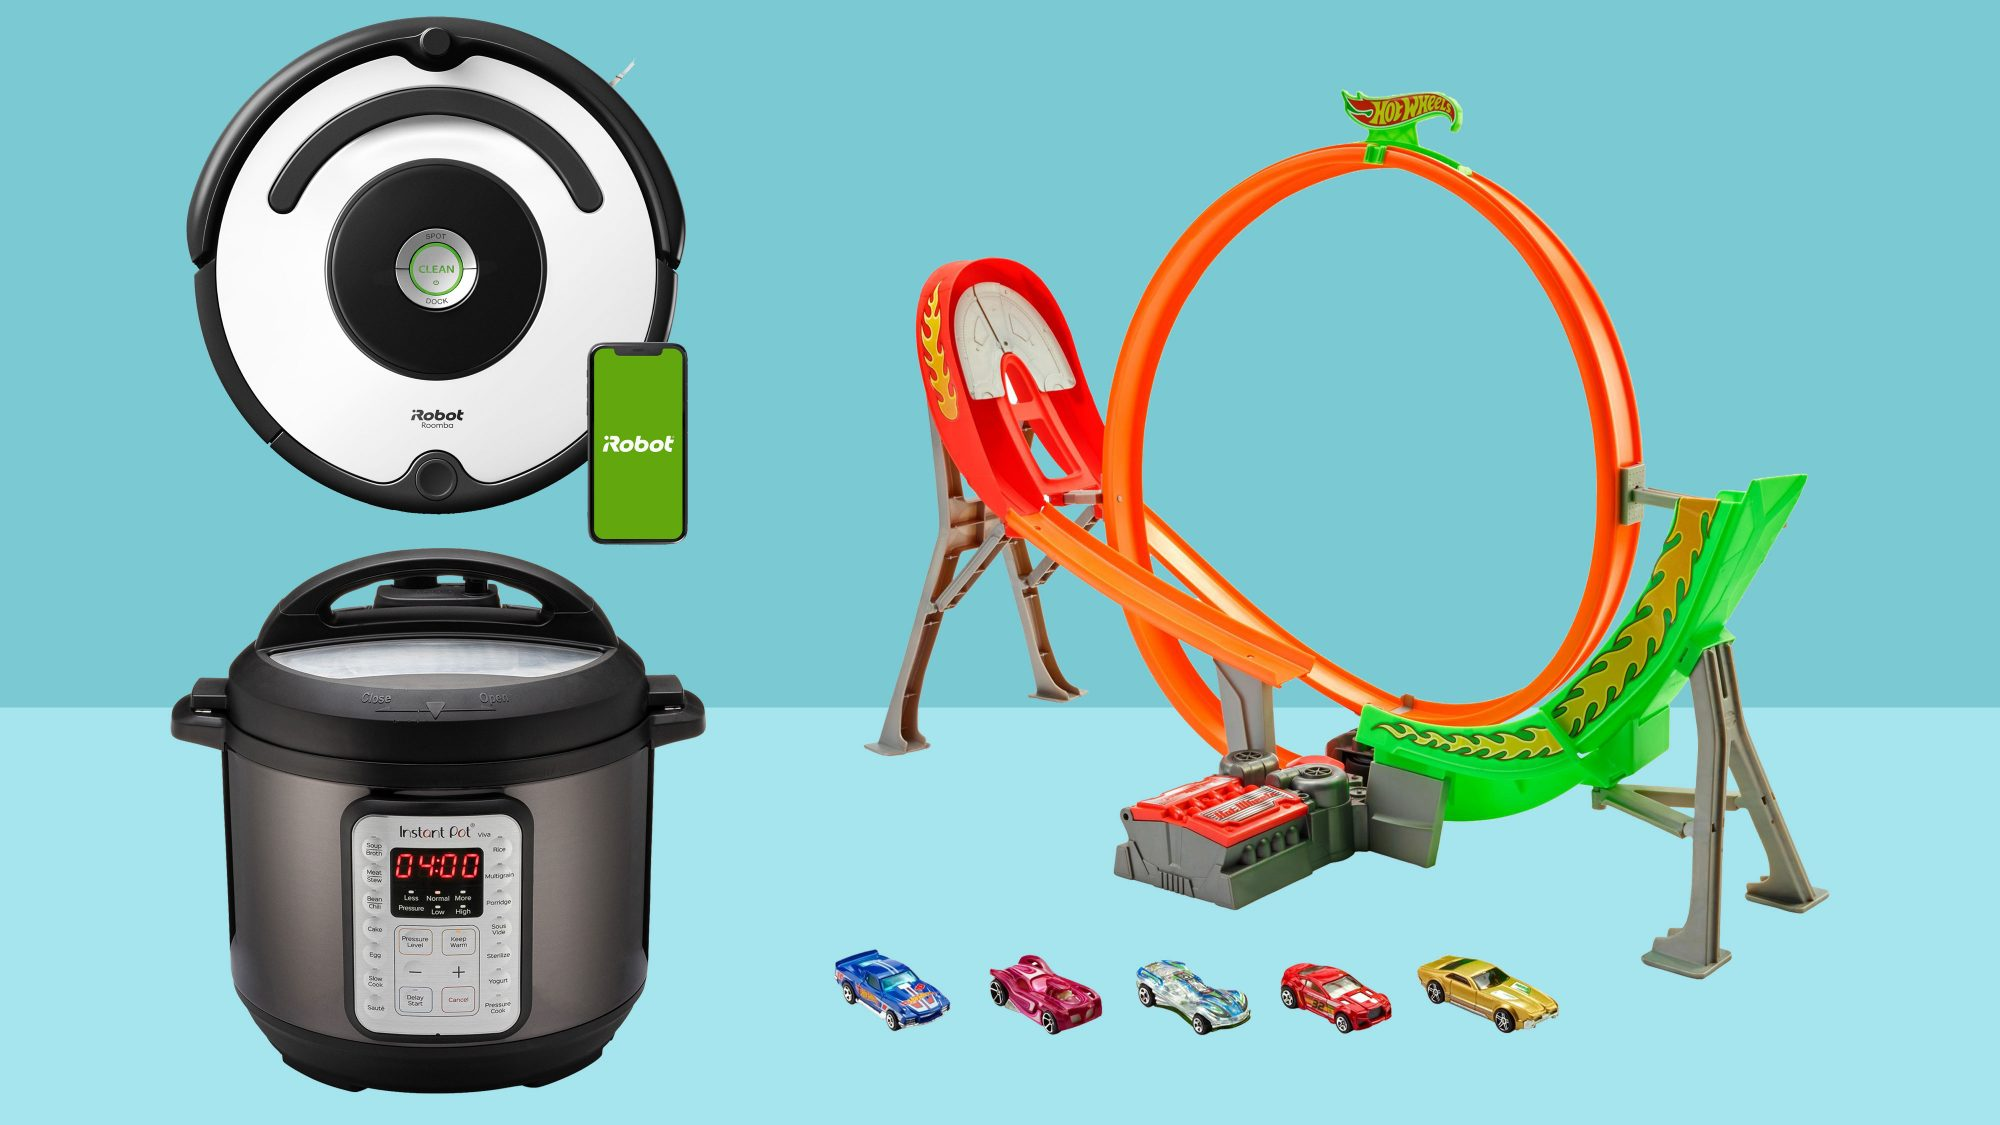 instant pot, hot wheels powershift raceway track, irobot roomba